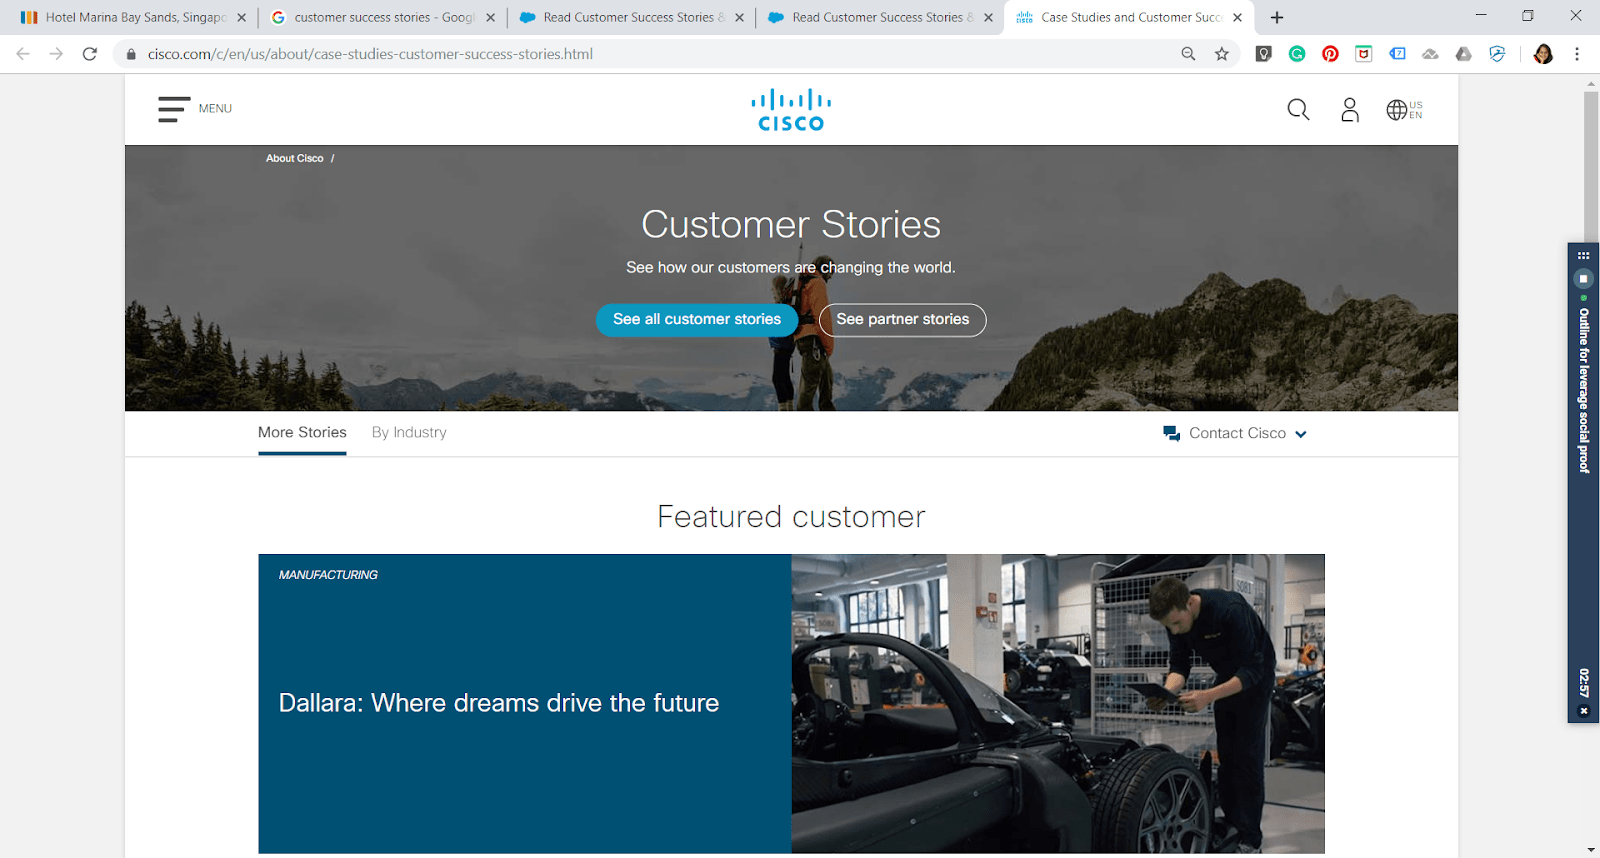 Cisco uses compelling customer success stories on their website